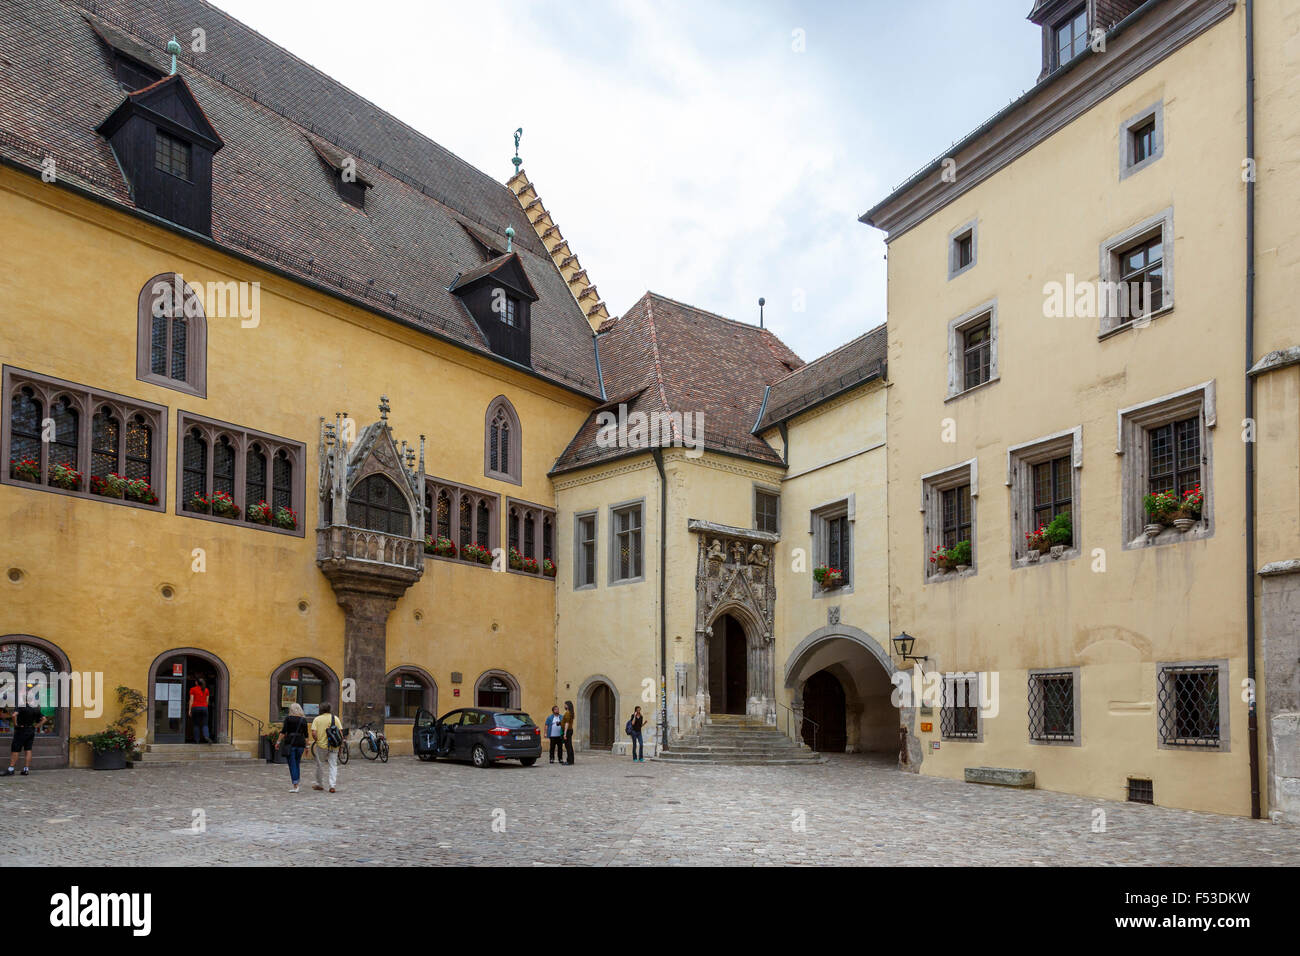 the courtyard of the imperial hall reichssaal old town hall stock photo royalty free image. Black Bedroom Furniture Sets. Home Design Ideas